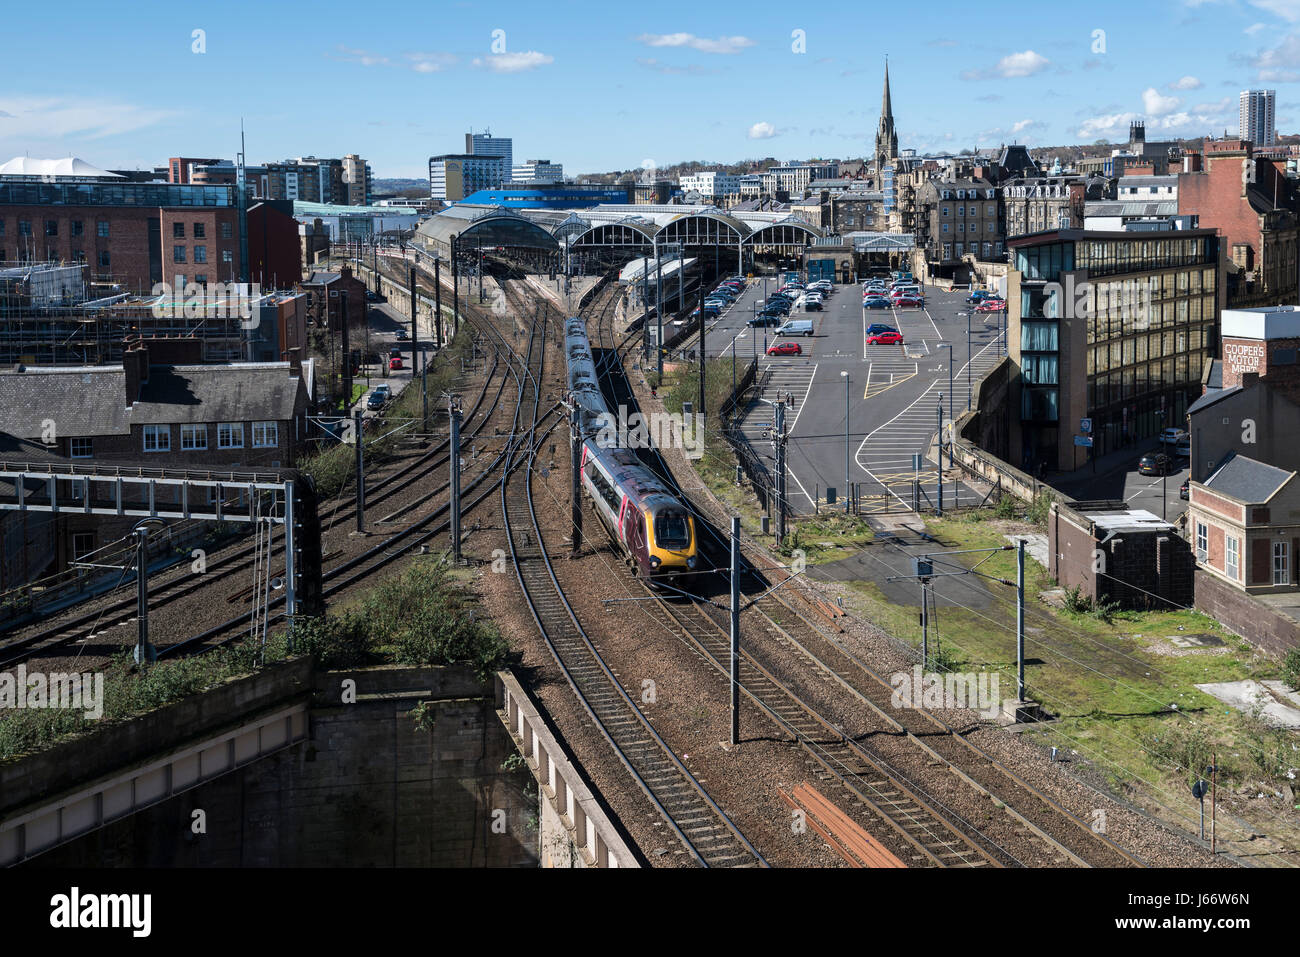 TransPennine Express train heading north bound on departure from Newcastle upon Tyne Central Station, England. - Stock Image